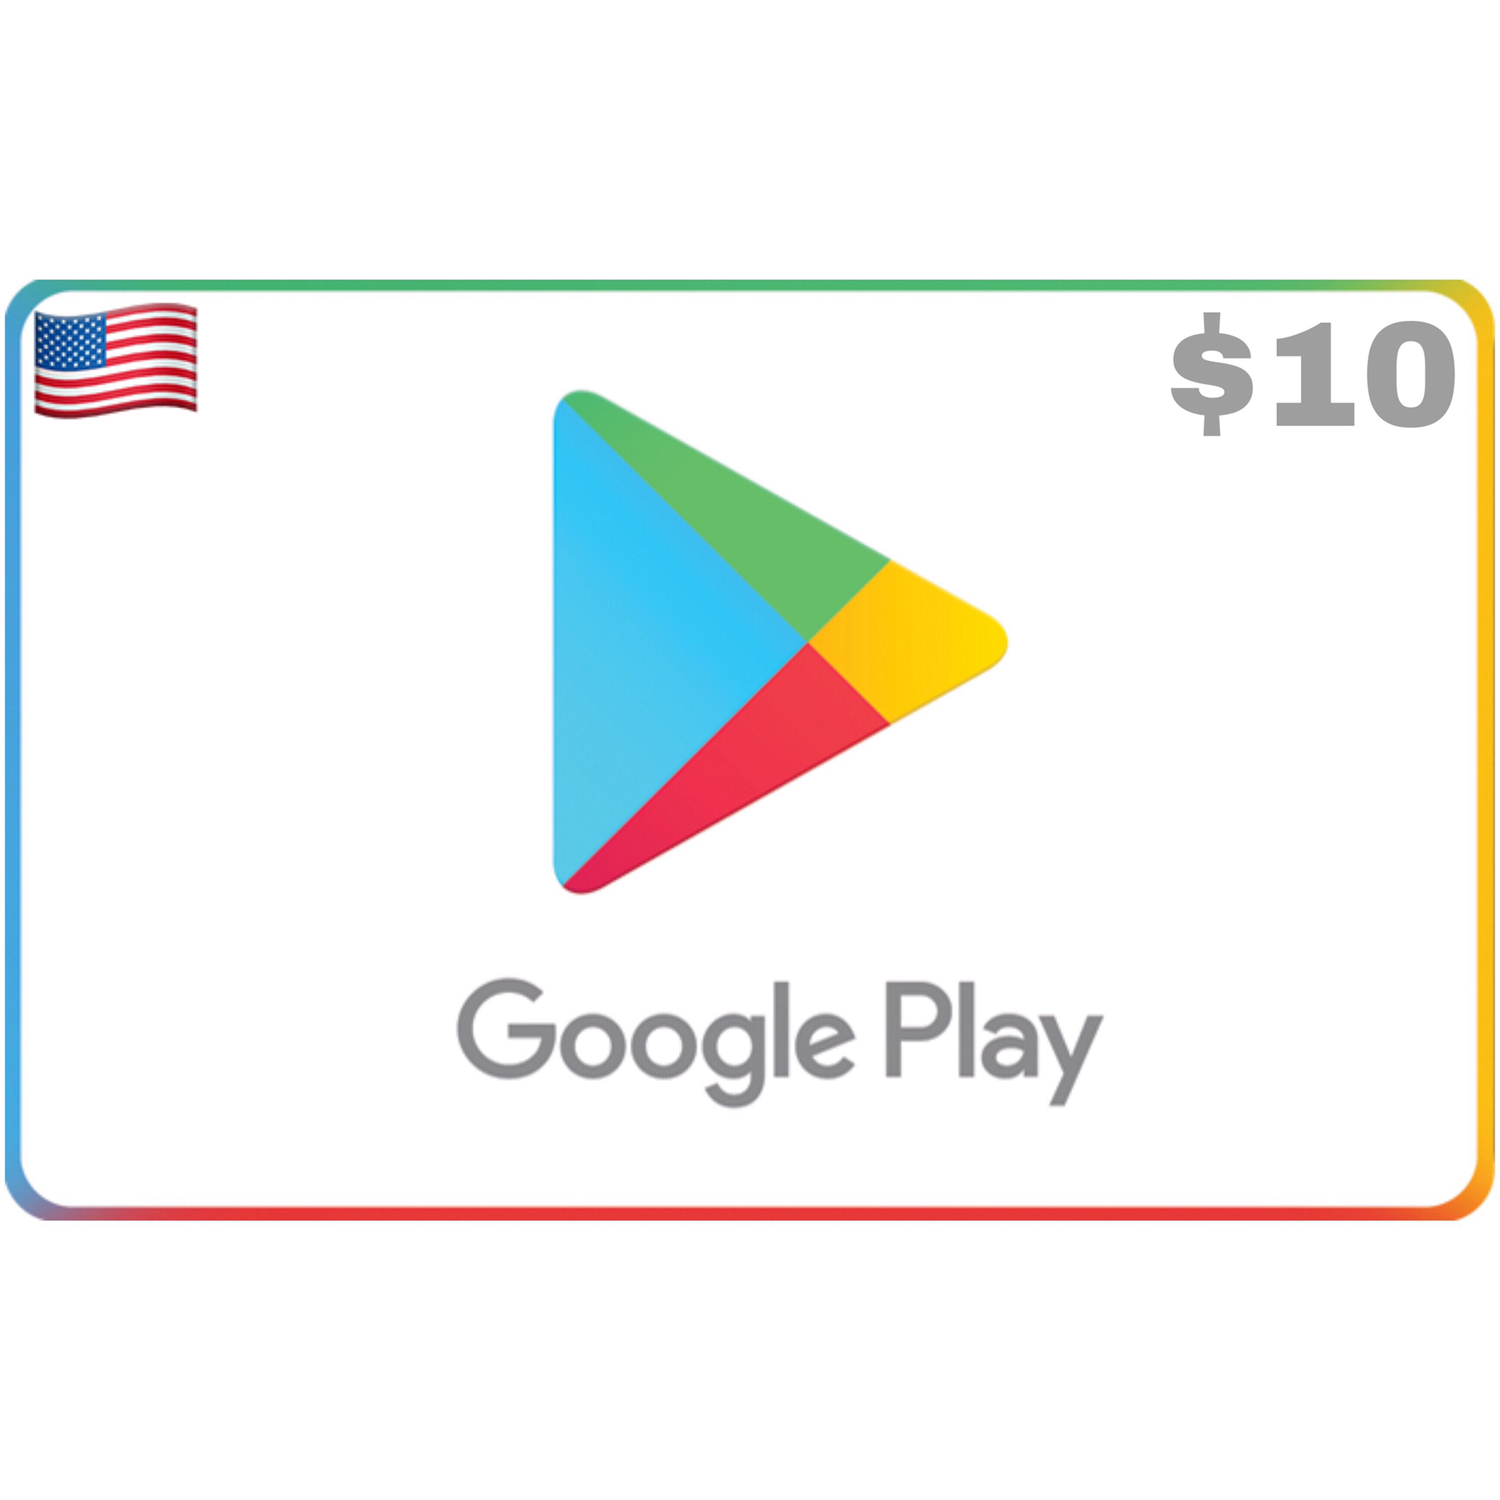 Google Play USA $10 (Gift Code)